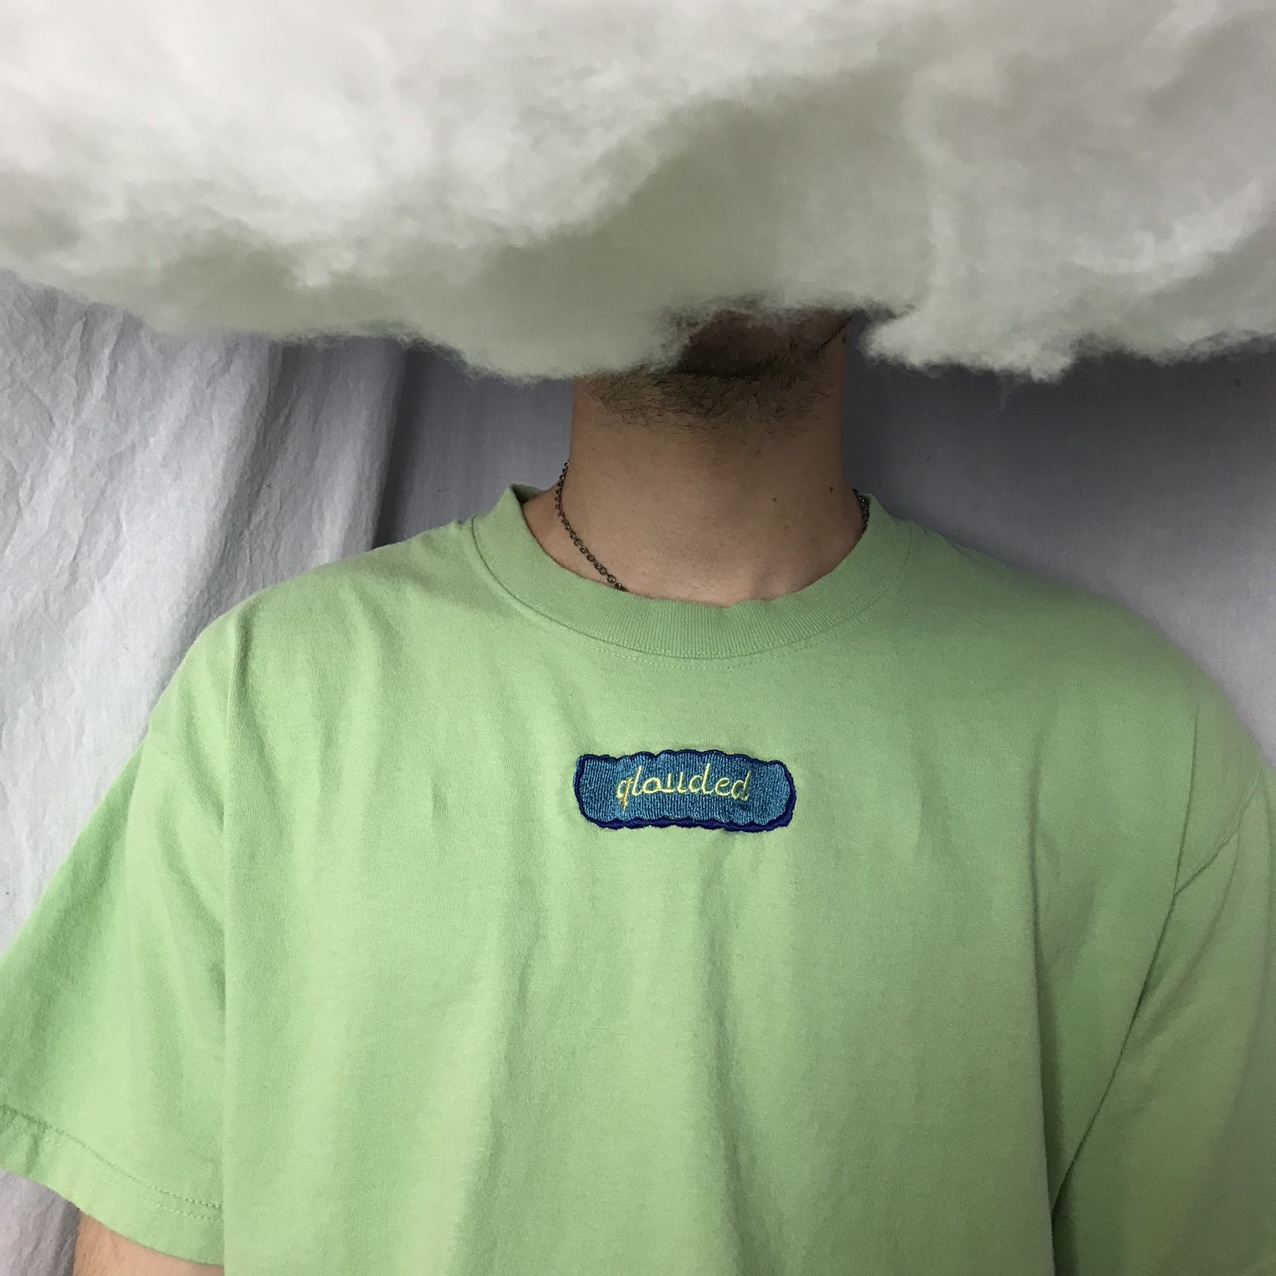 Product Image 1 - Green t-shirt with a soft